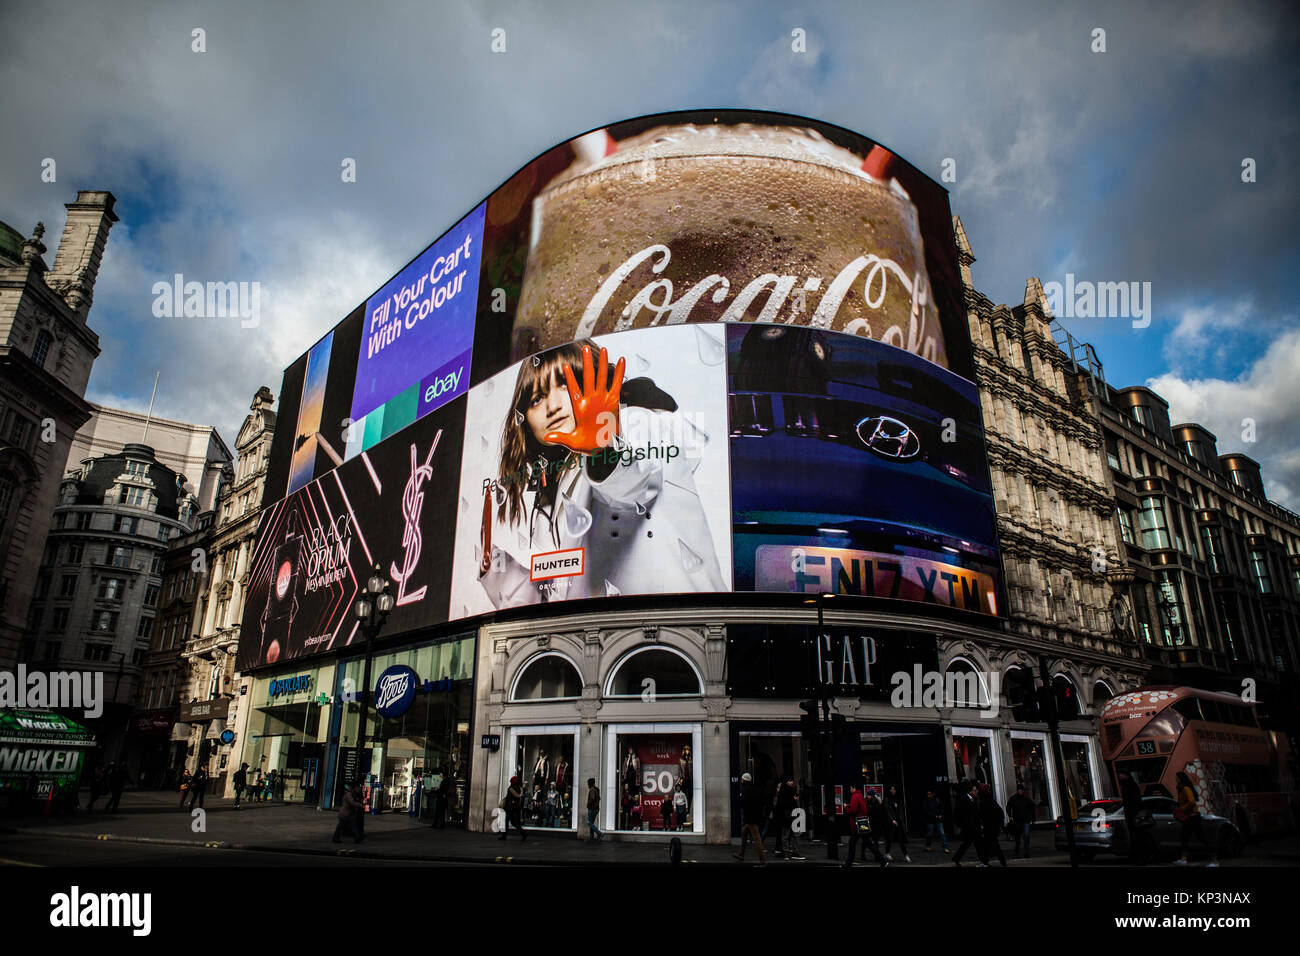 Picadilly Cirrcus, London,UK, 8th December 2017, famous digital advertising board at picadilly circus in London - Stock Image